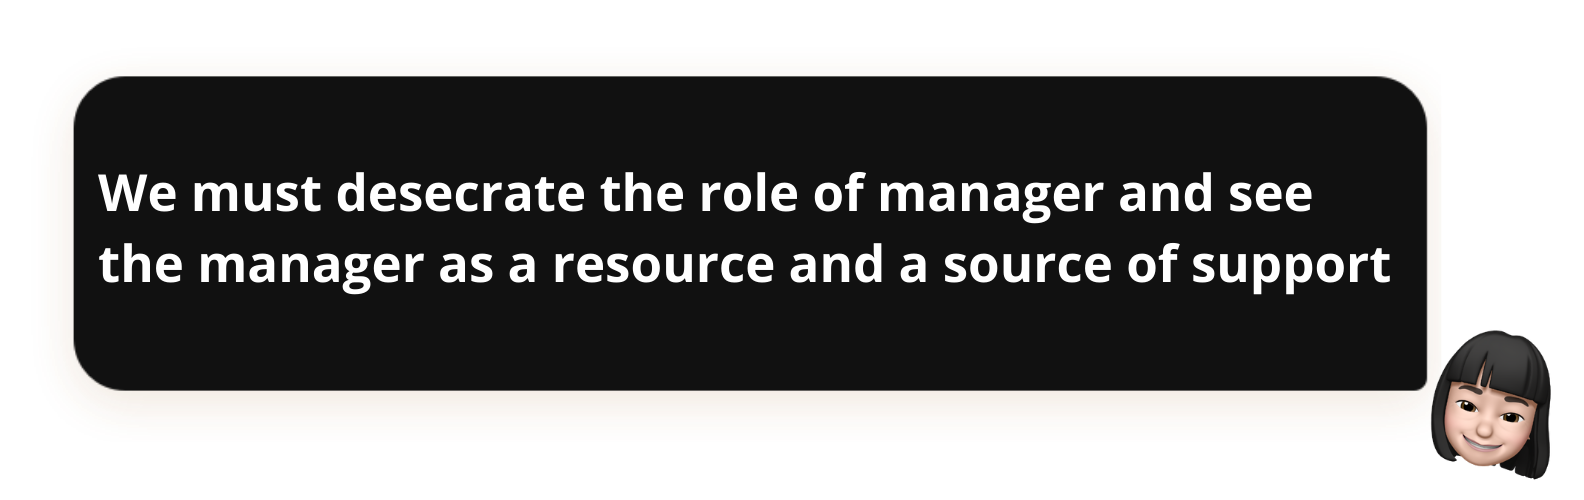 We must desecrate the role of manager and see the manager as a resource and a source of support